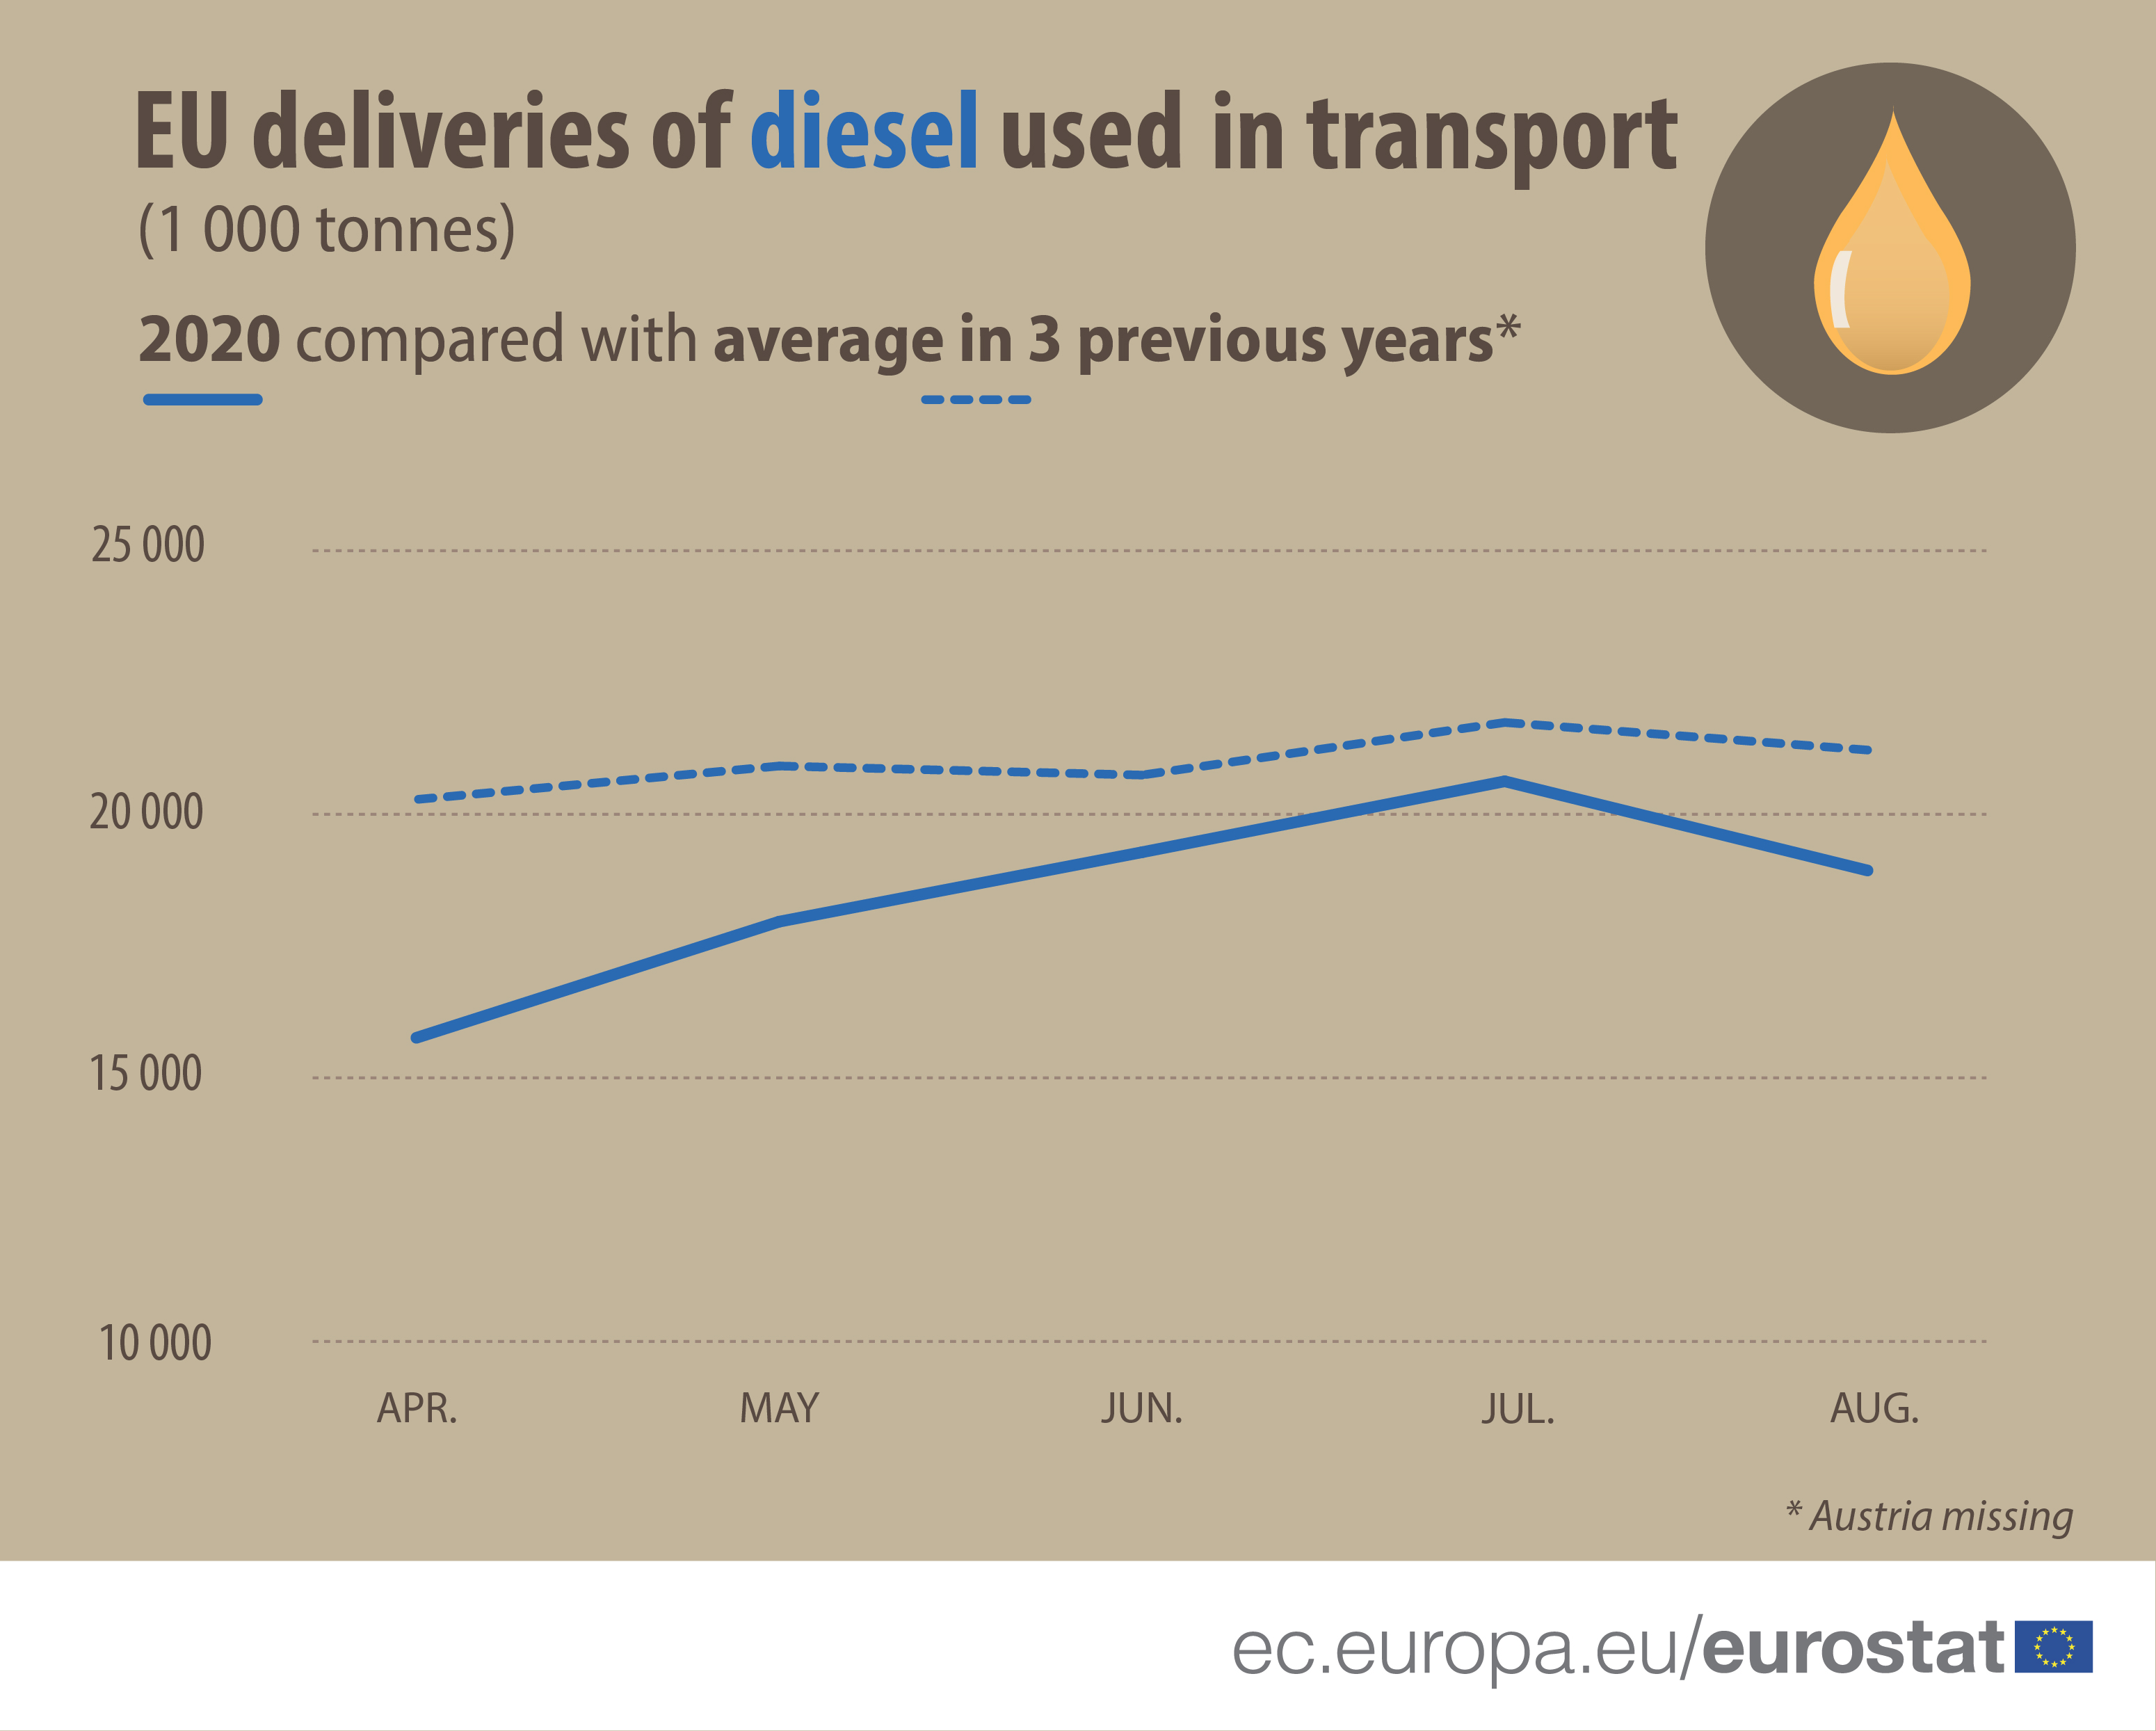 EU deliveries of diesel used in transport (1000 tonnes)